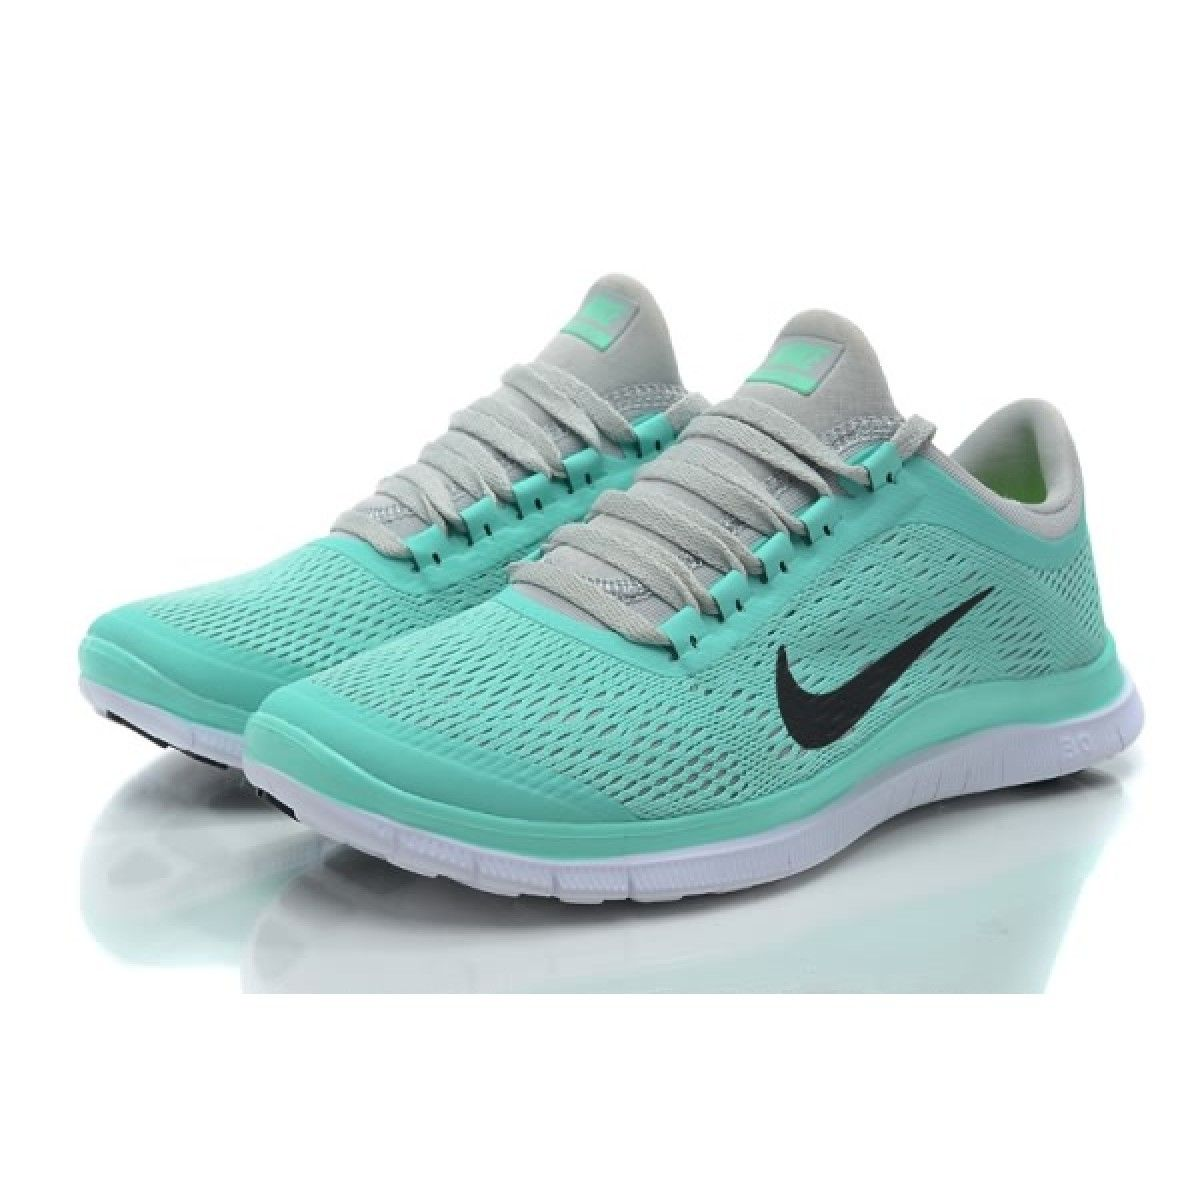 competitive price 4e555 38c34 ... Nike Free 3.0 V5 Womens Nike Free 3.0 V5 Womens Running shoes Crystal  Mint for ...